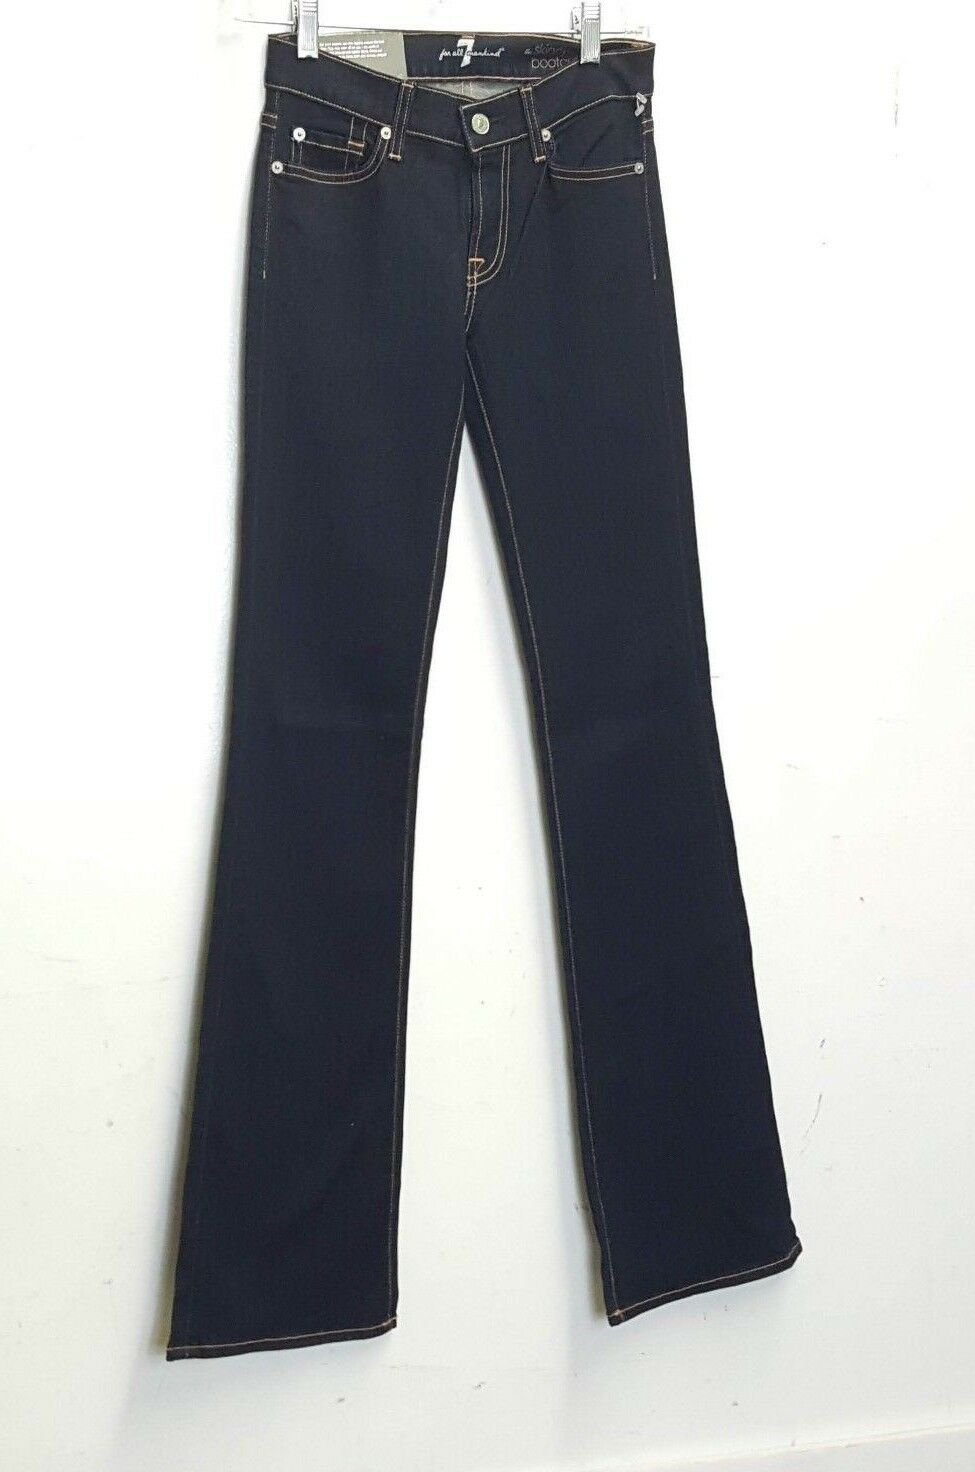 7 For All Mankind The Skinny Bootcut Women's Jeans sz 24 Dark wash NWT